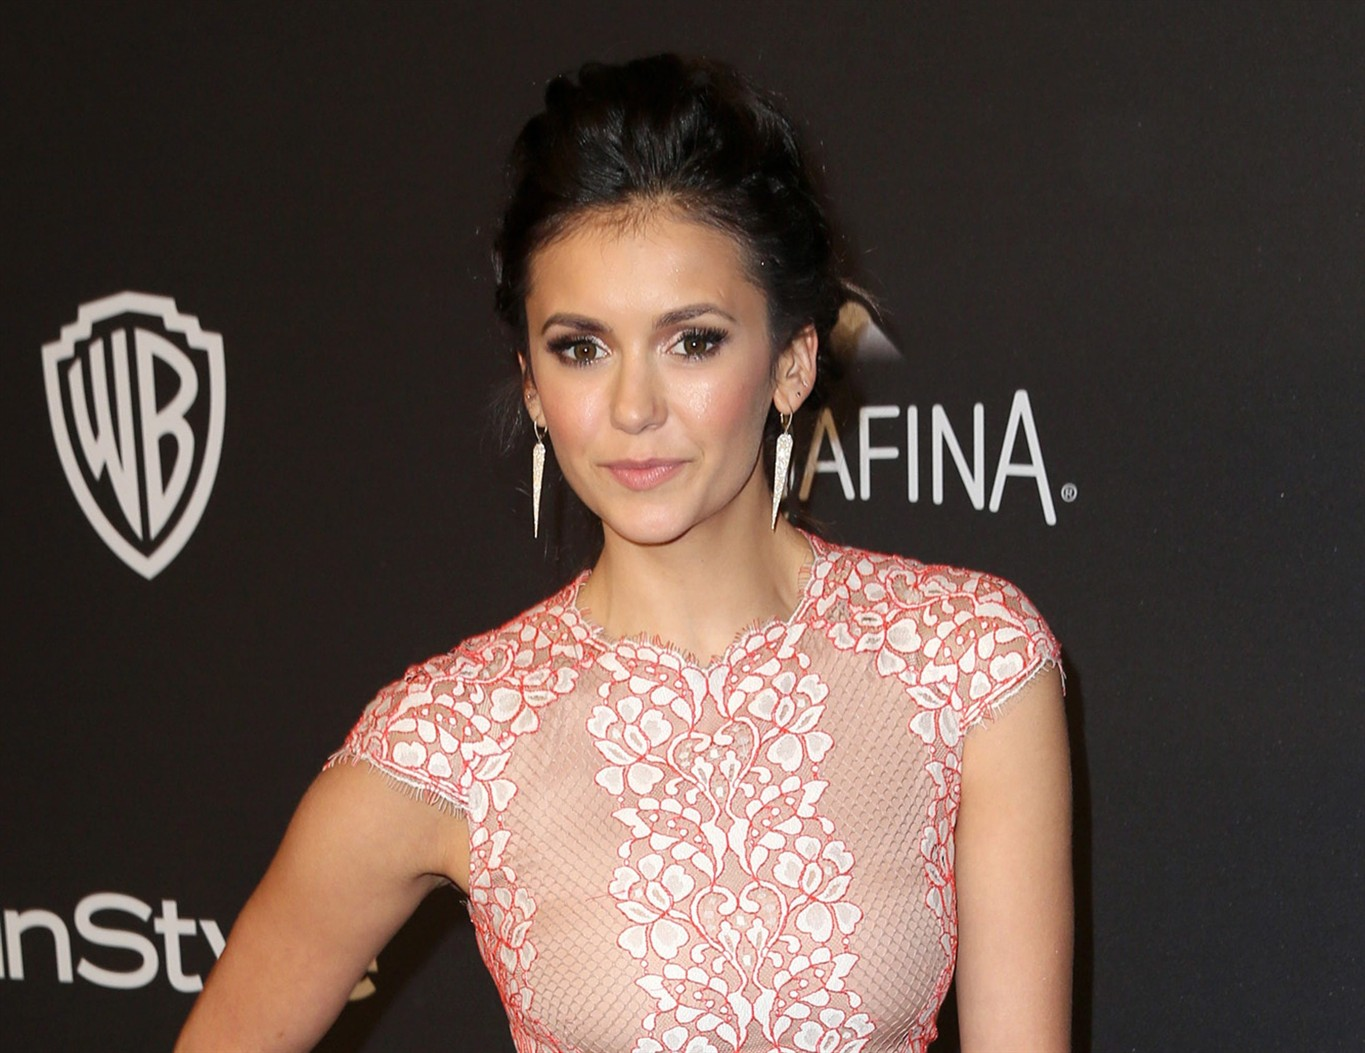 CW talking to Nina Dobrev about 'Vampire Diaries' send-off